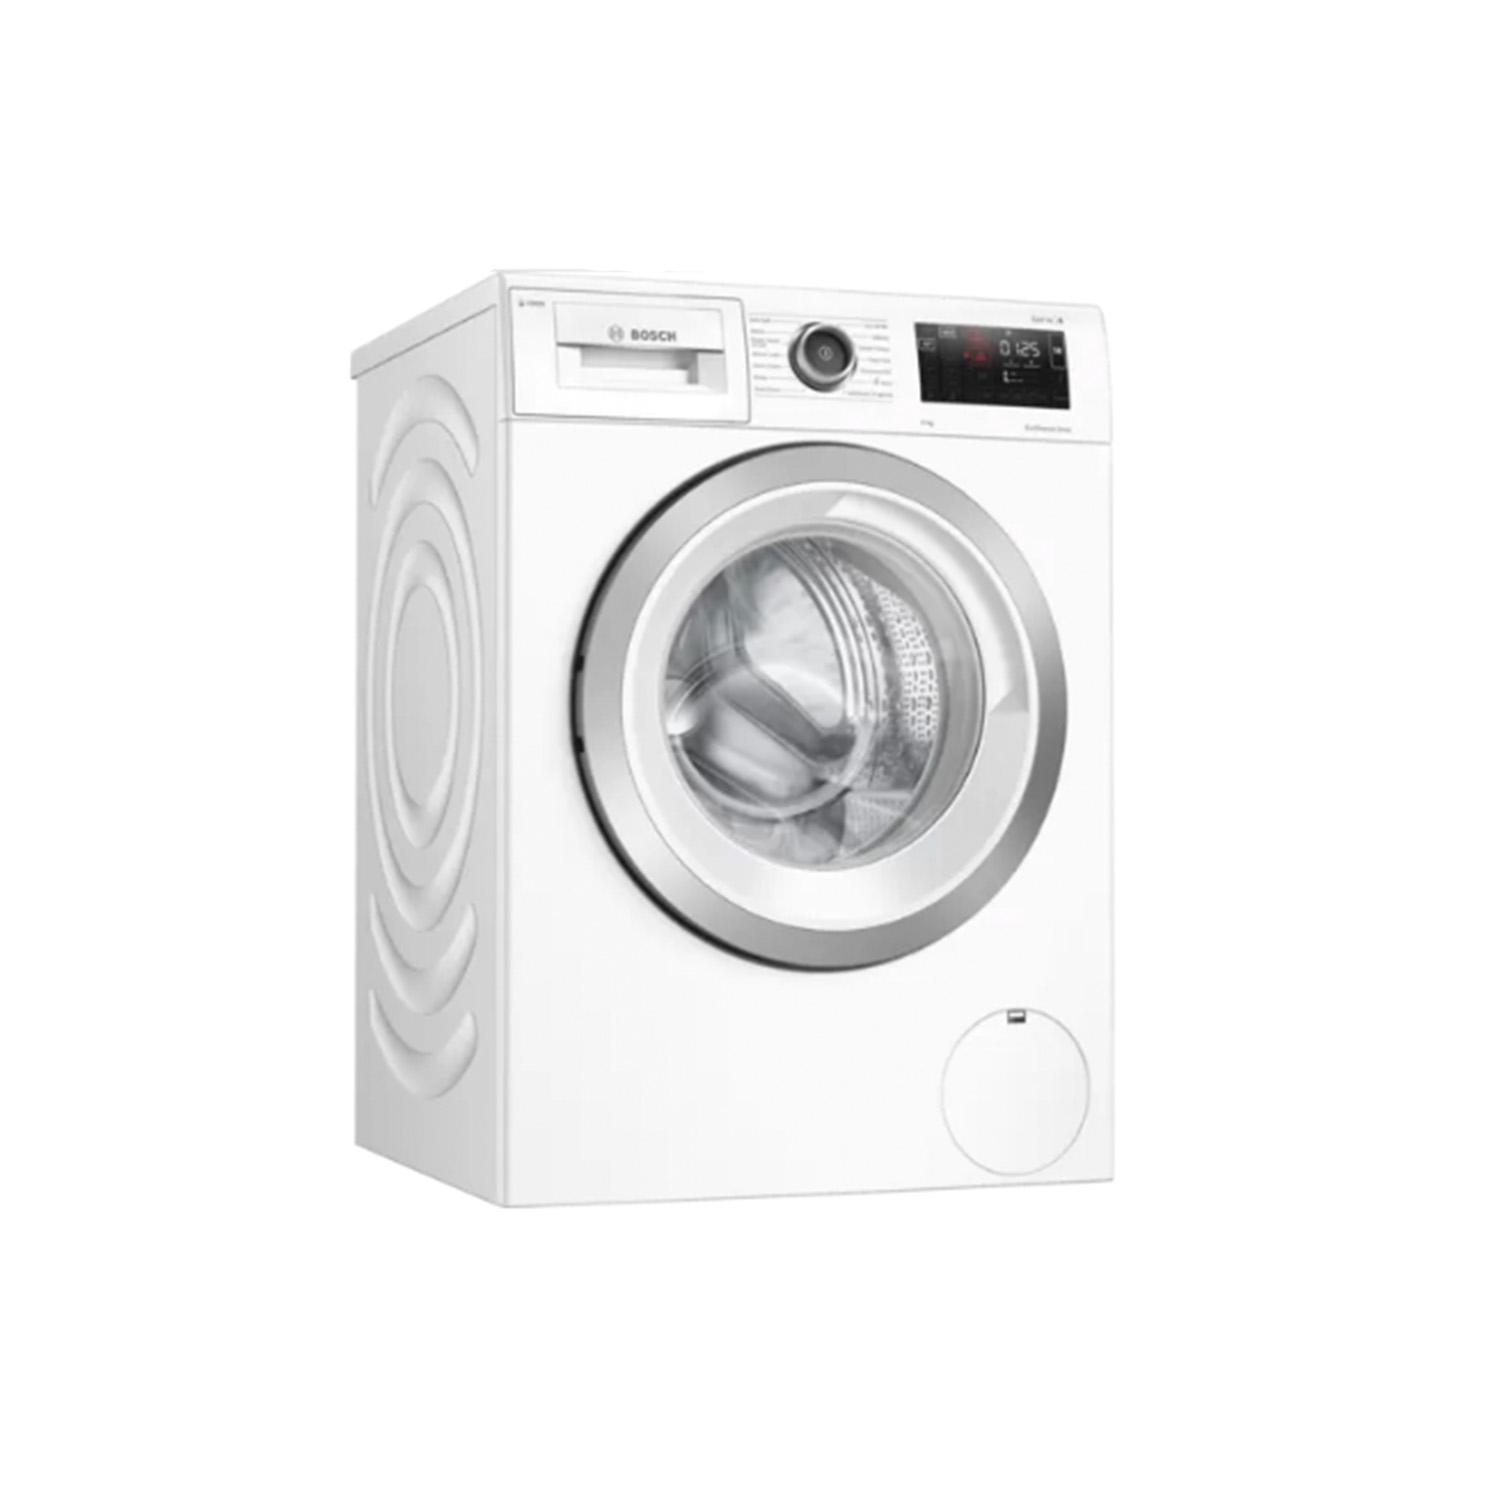 Bosch WAU28PH9GB 9kg 1400 Spin Washing Machine with EcoSilence Drive - White - 0